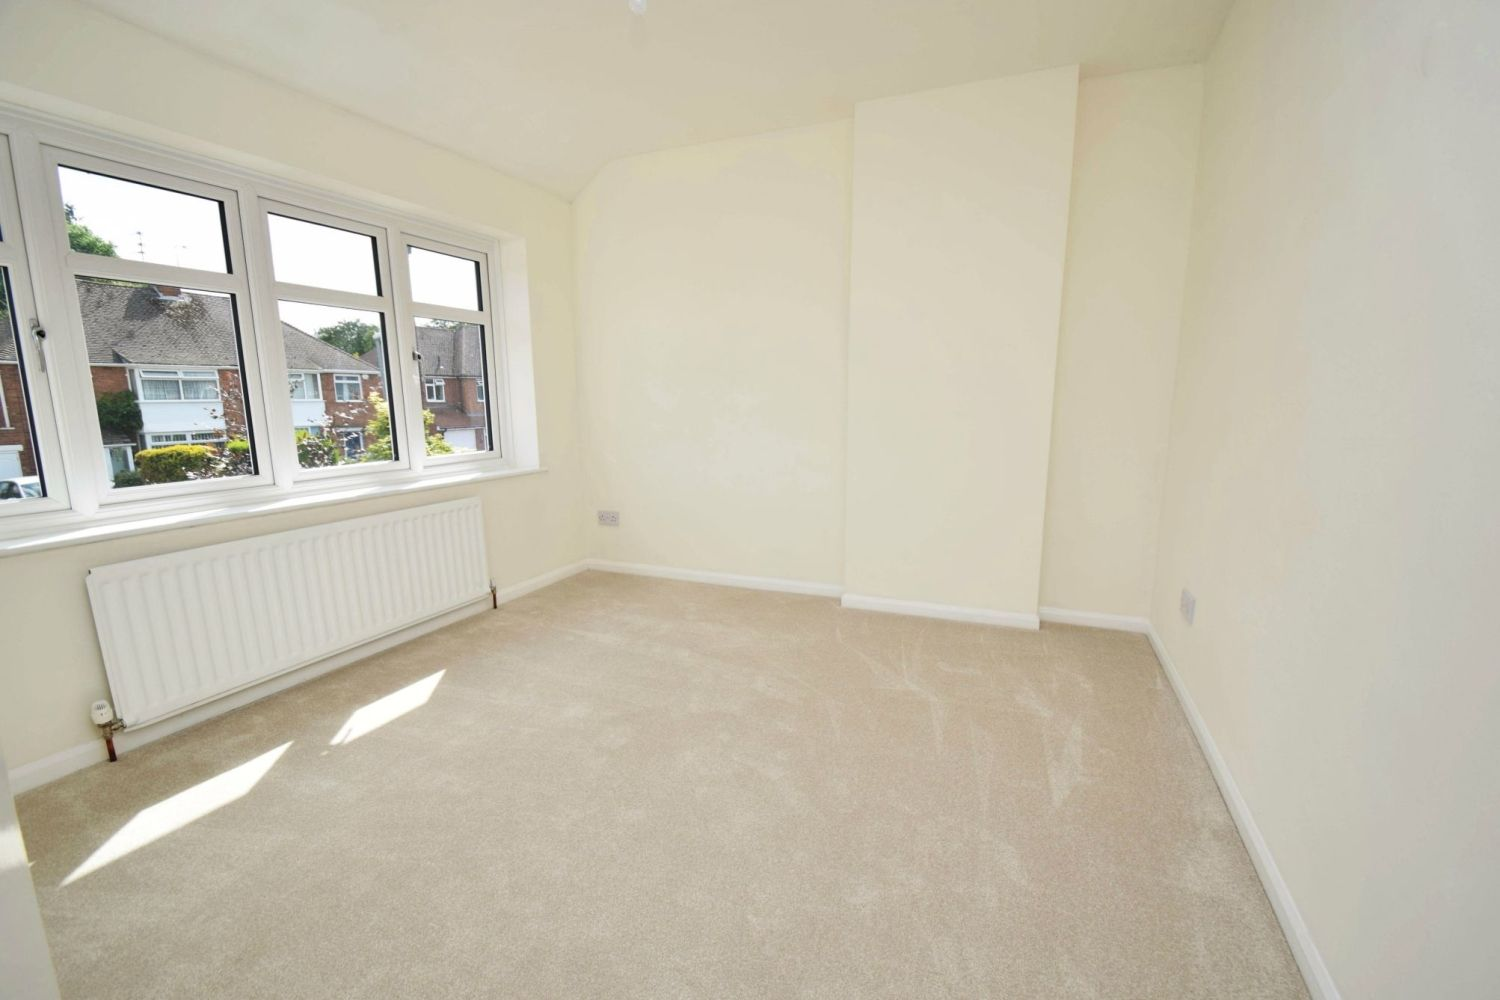 3 bed semi-detached for sale in Beachcroft Road, Wall Heath  - Property Image 9